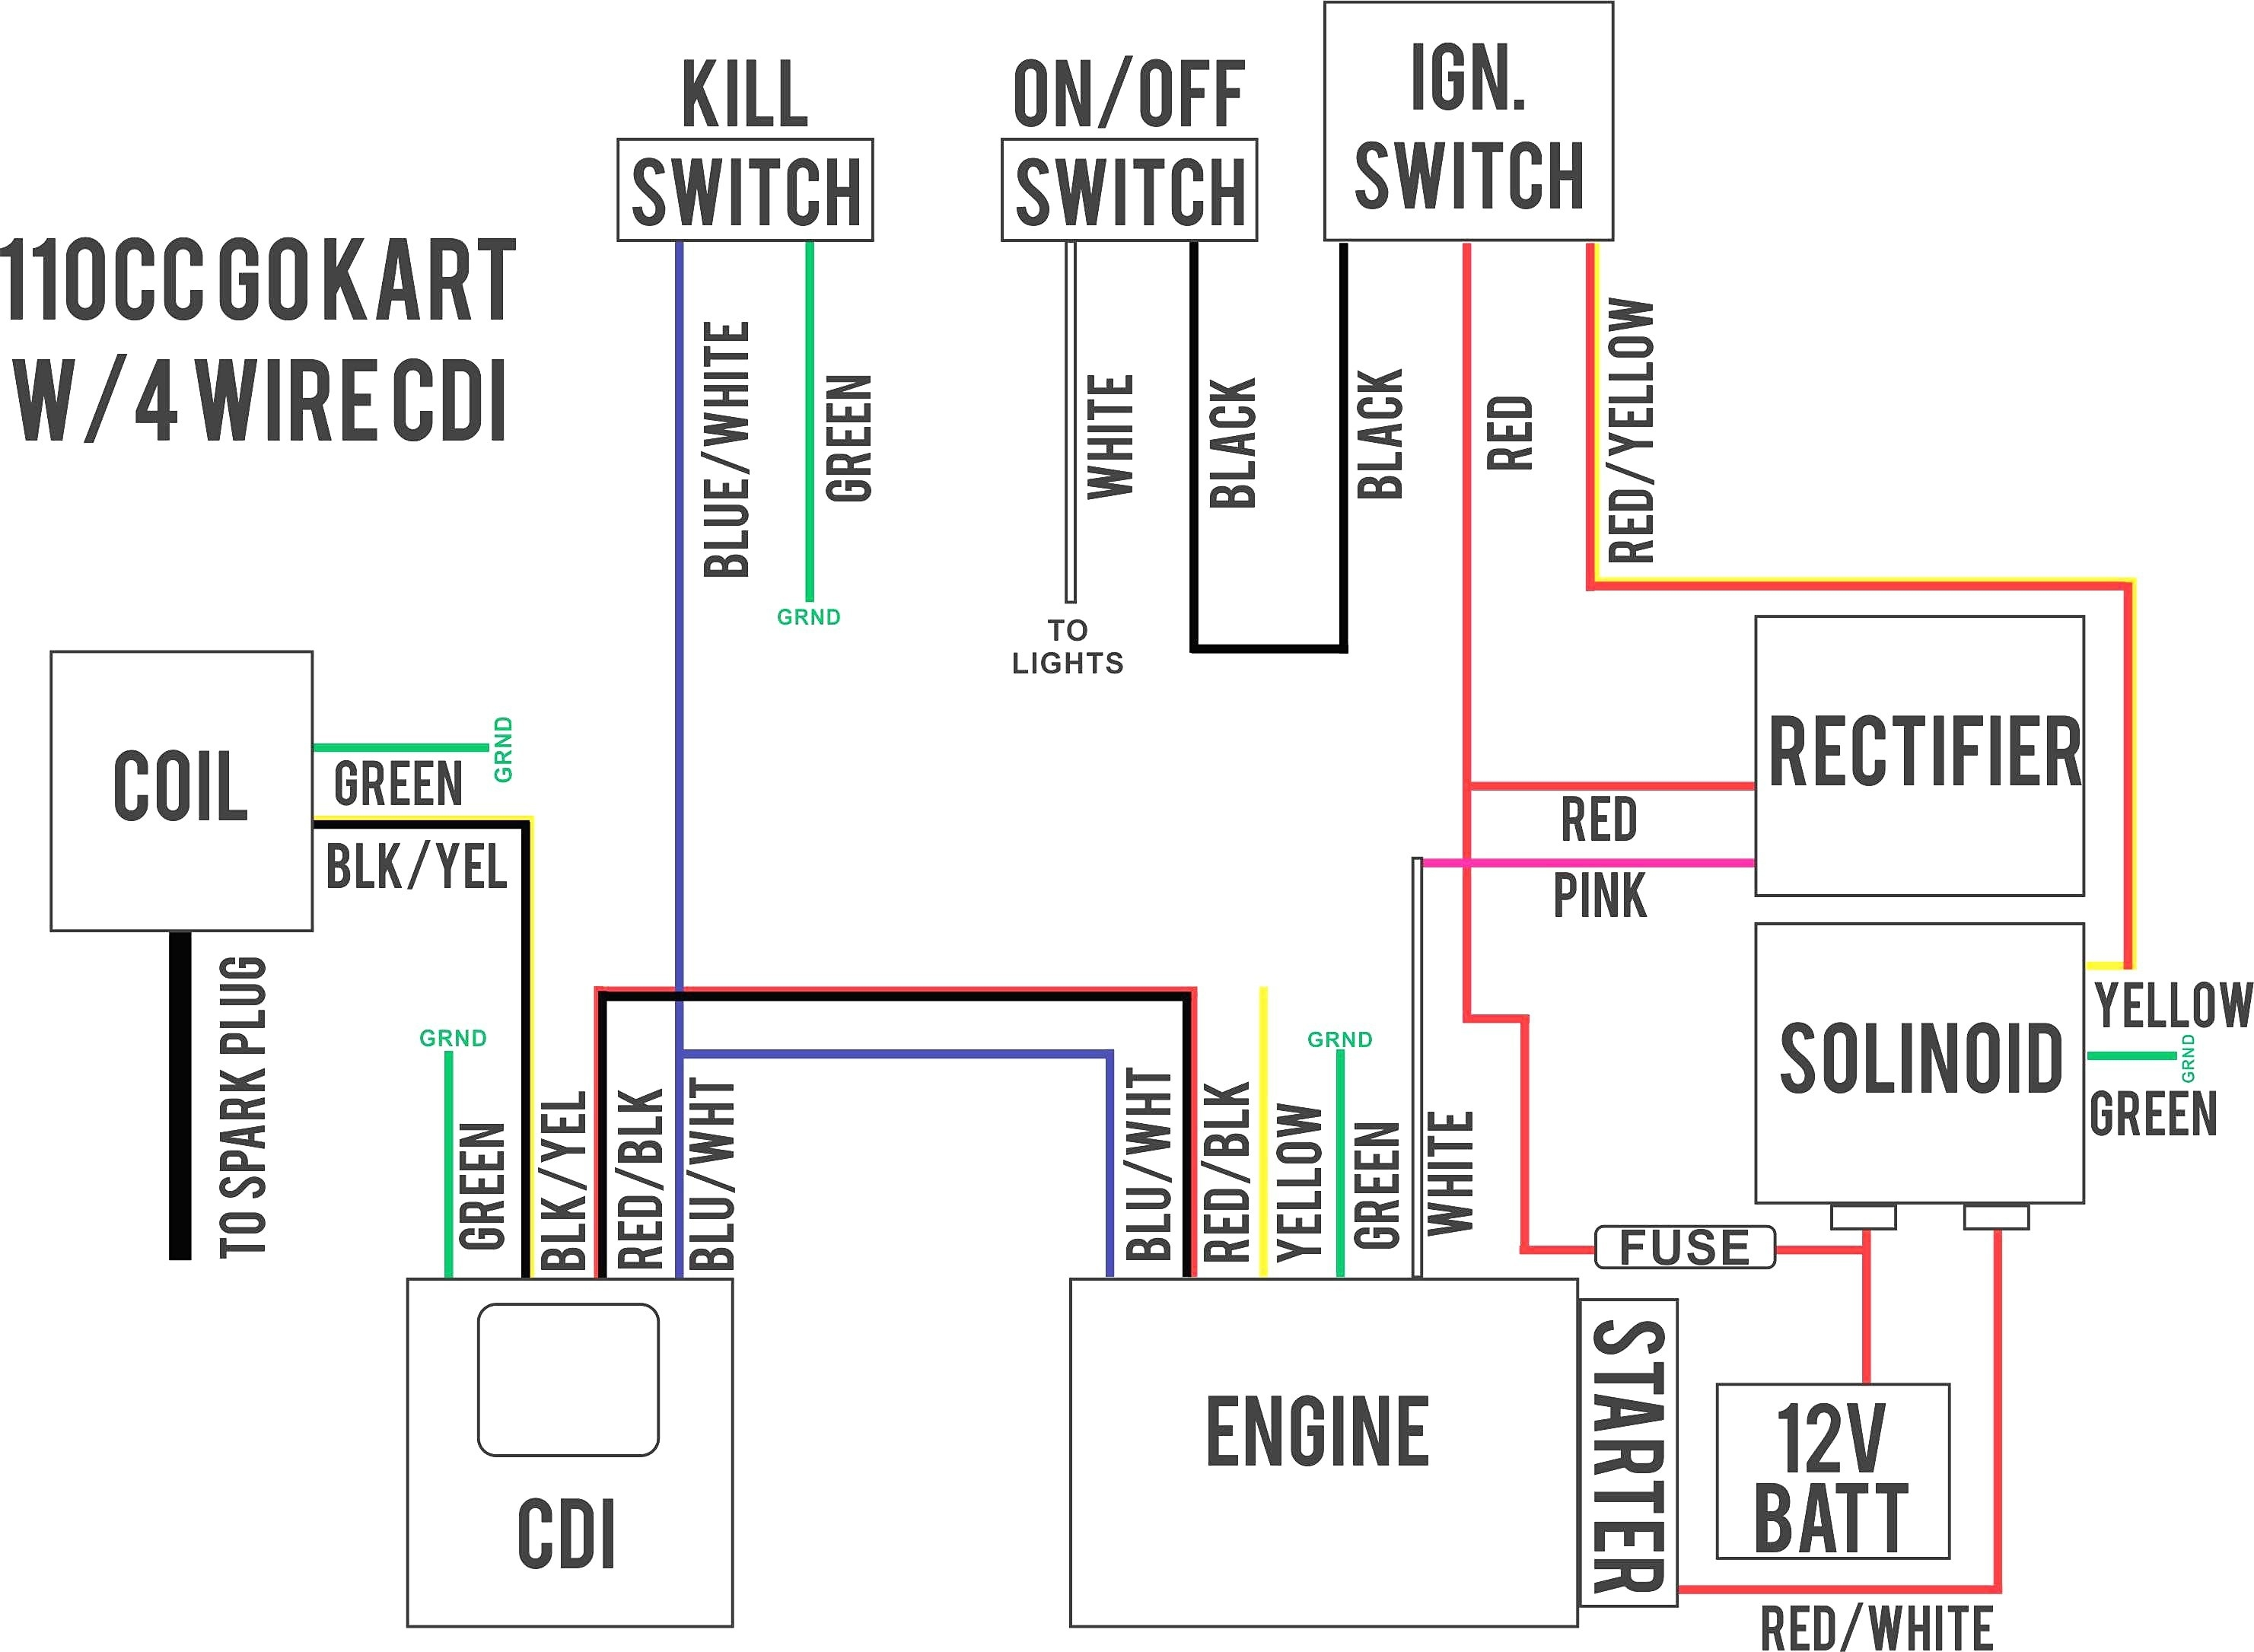 nps50 wiring diagram 16 9 ulrich temme de \u2022ruckus switch wiring diagram wiring schematic diagram rh 58 twizer co 2009 honda nps50s honda nps50 wiring diagram